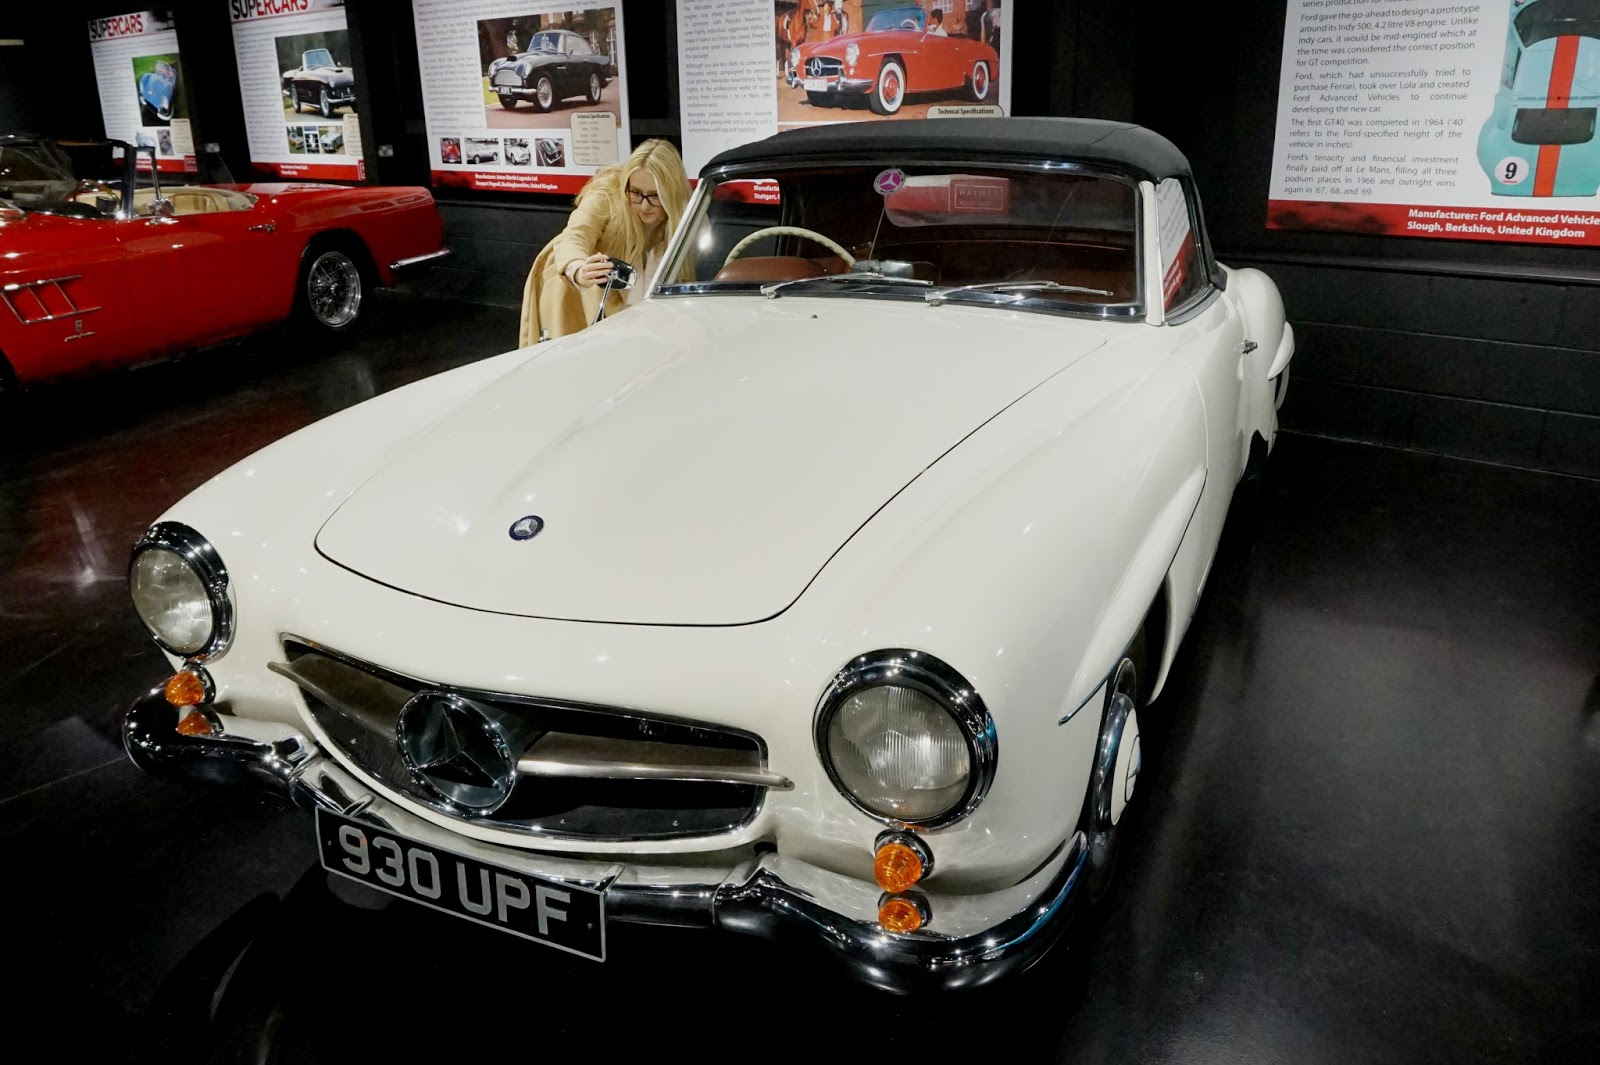 Mercedes super car classic white sports car selfie new car haynes motor museum